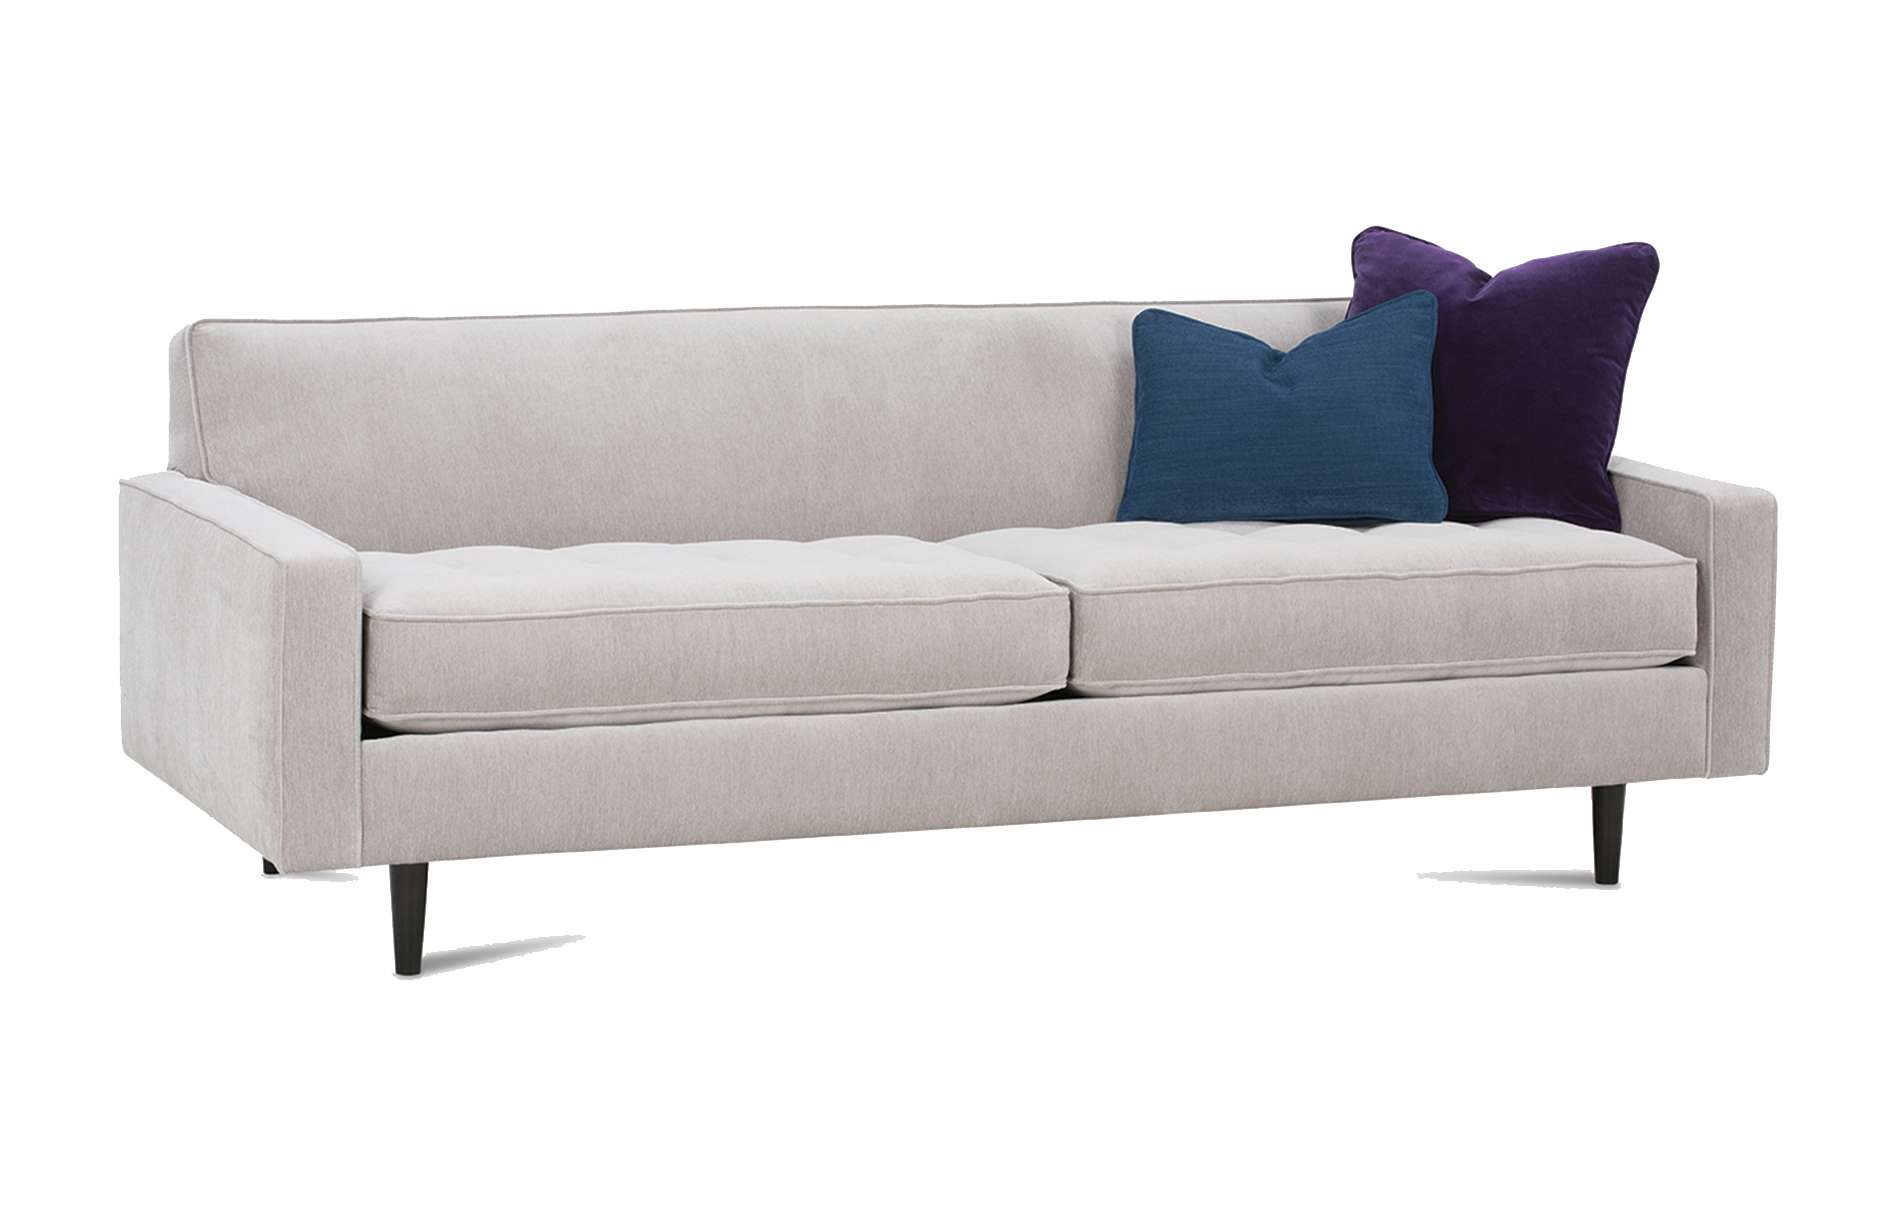 Brady Sofa, starting at  $1499